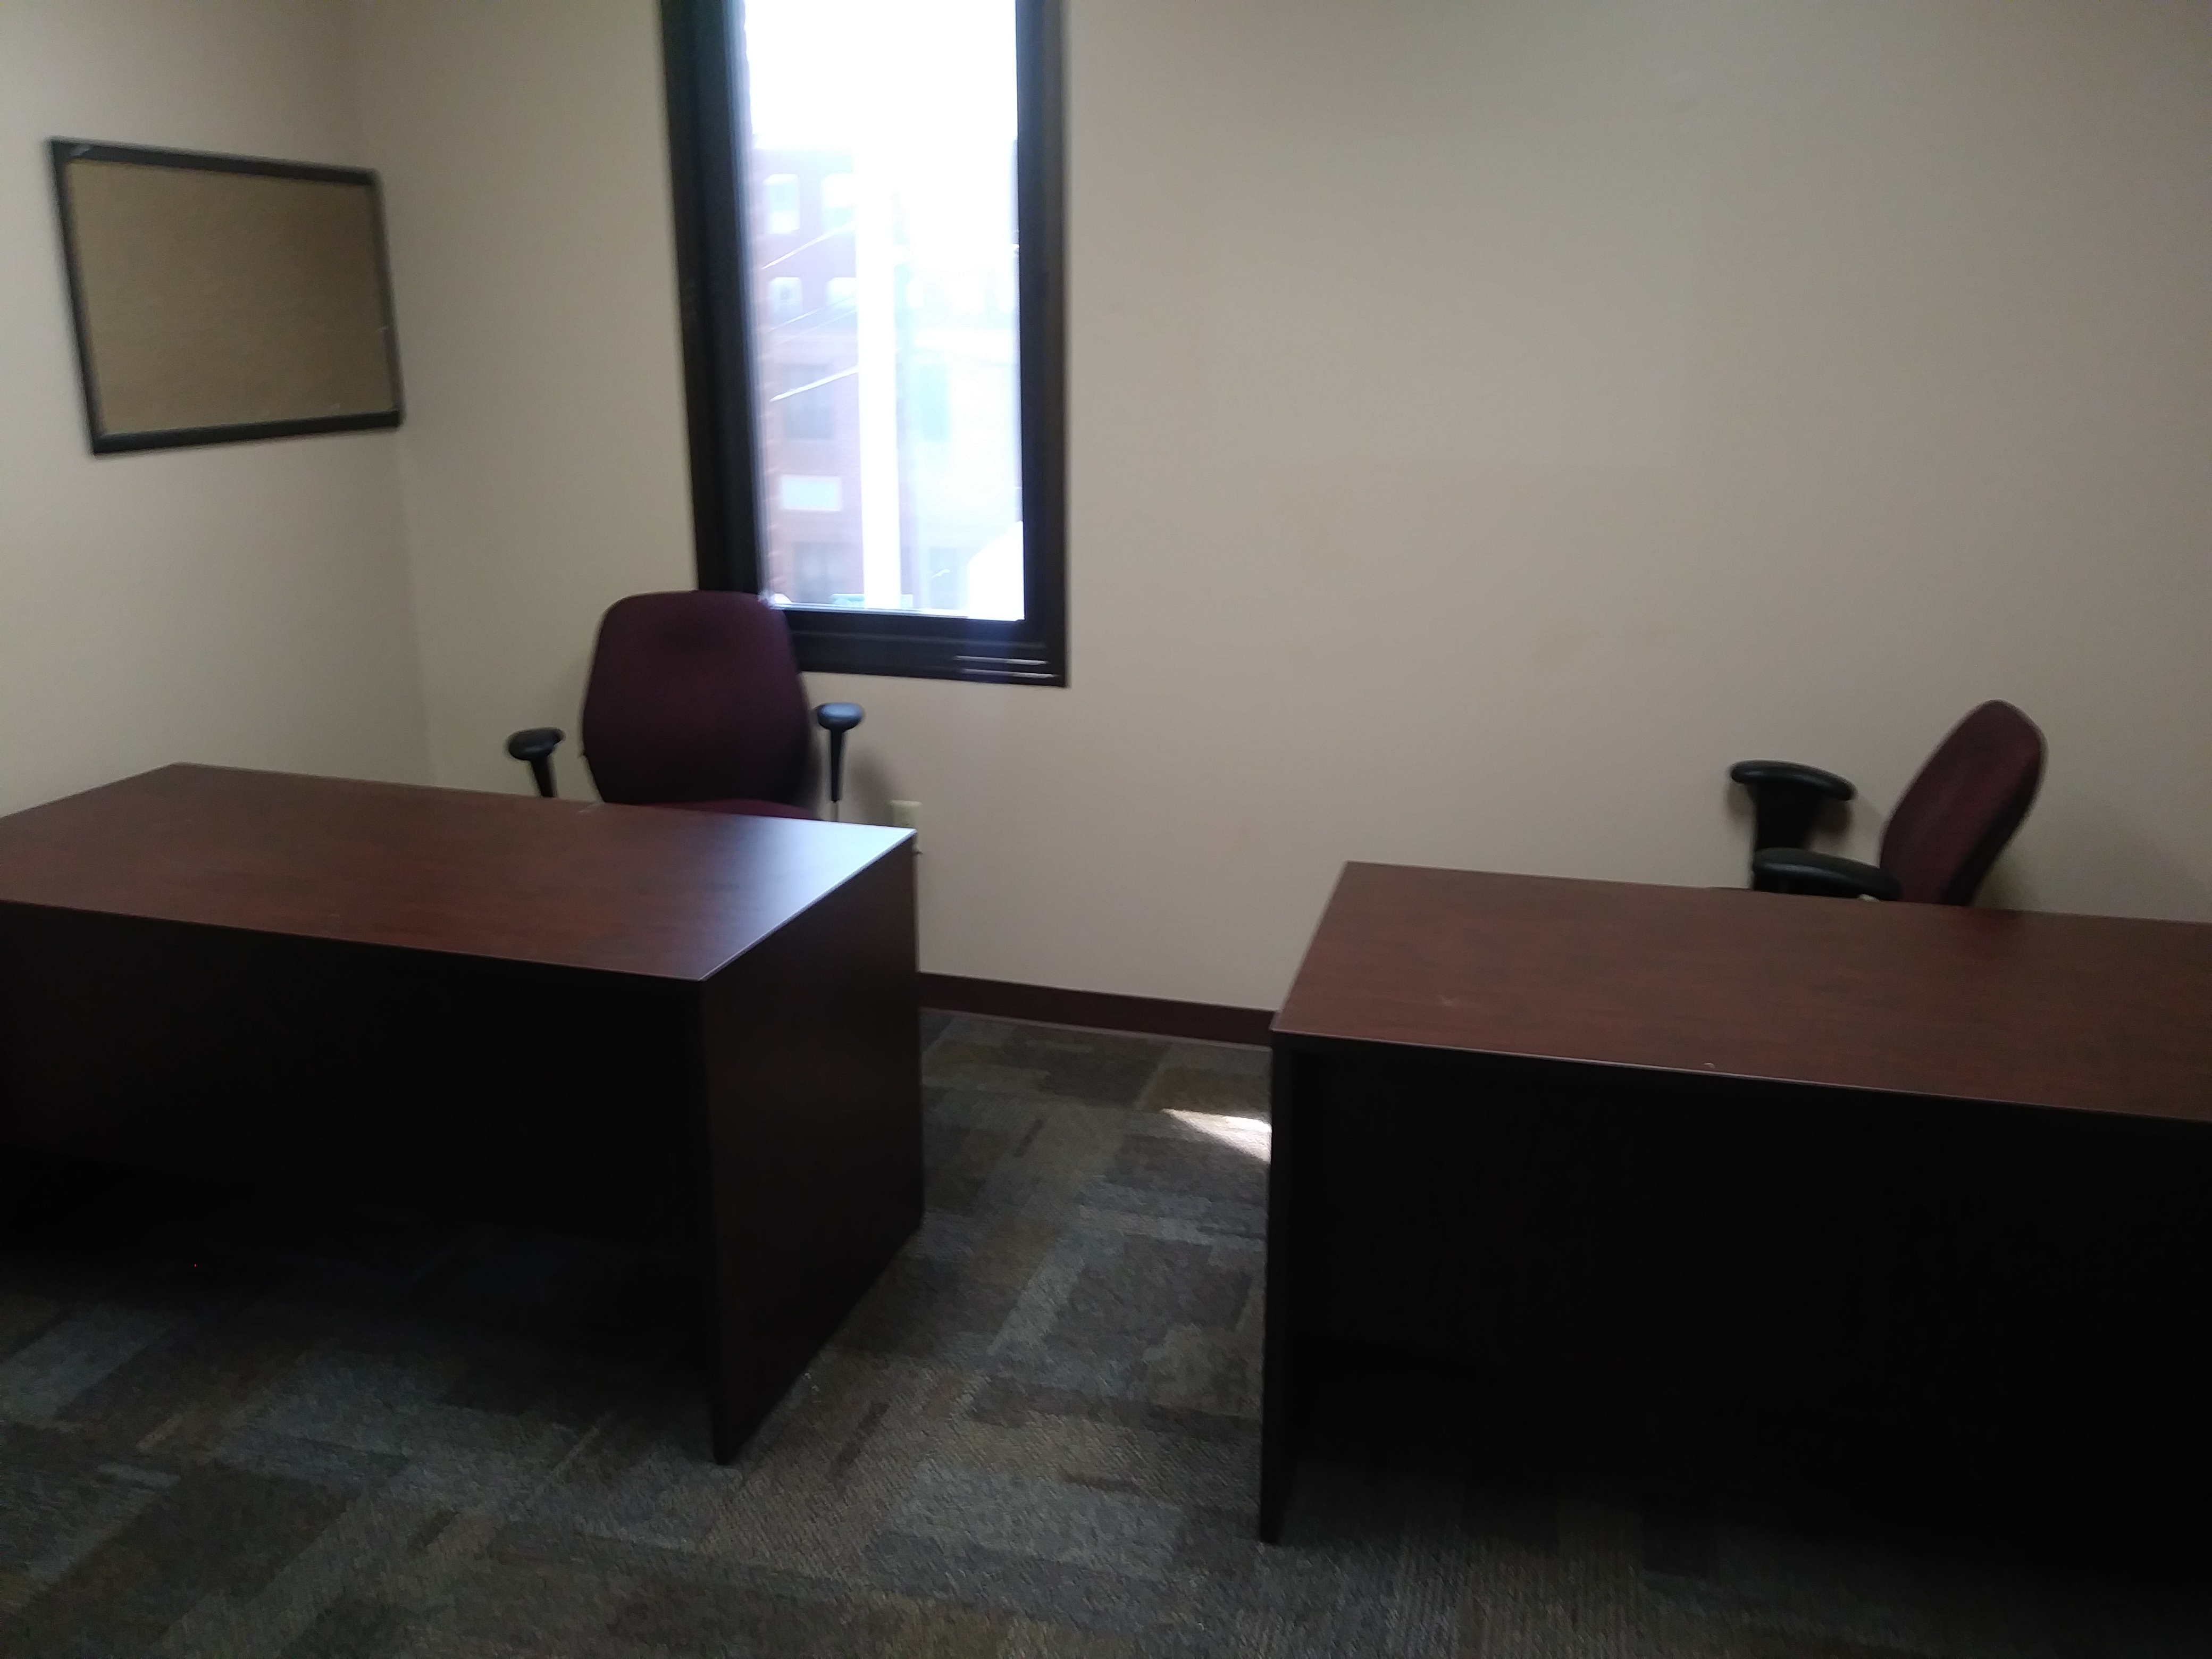 rental office space furnished with two desks and chairs